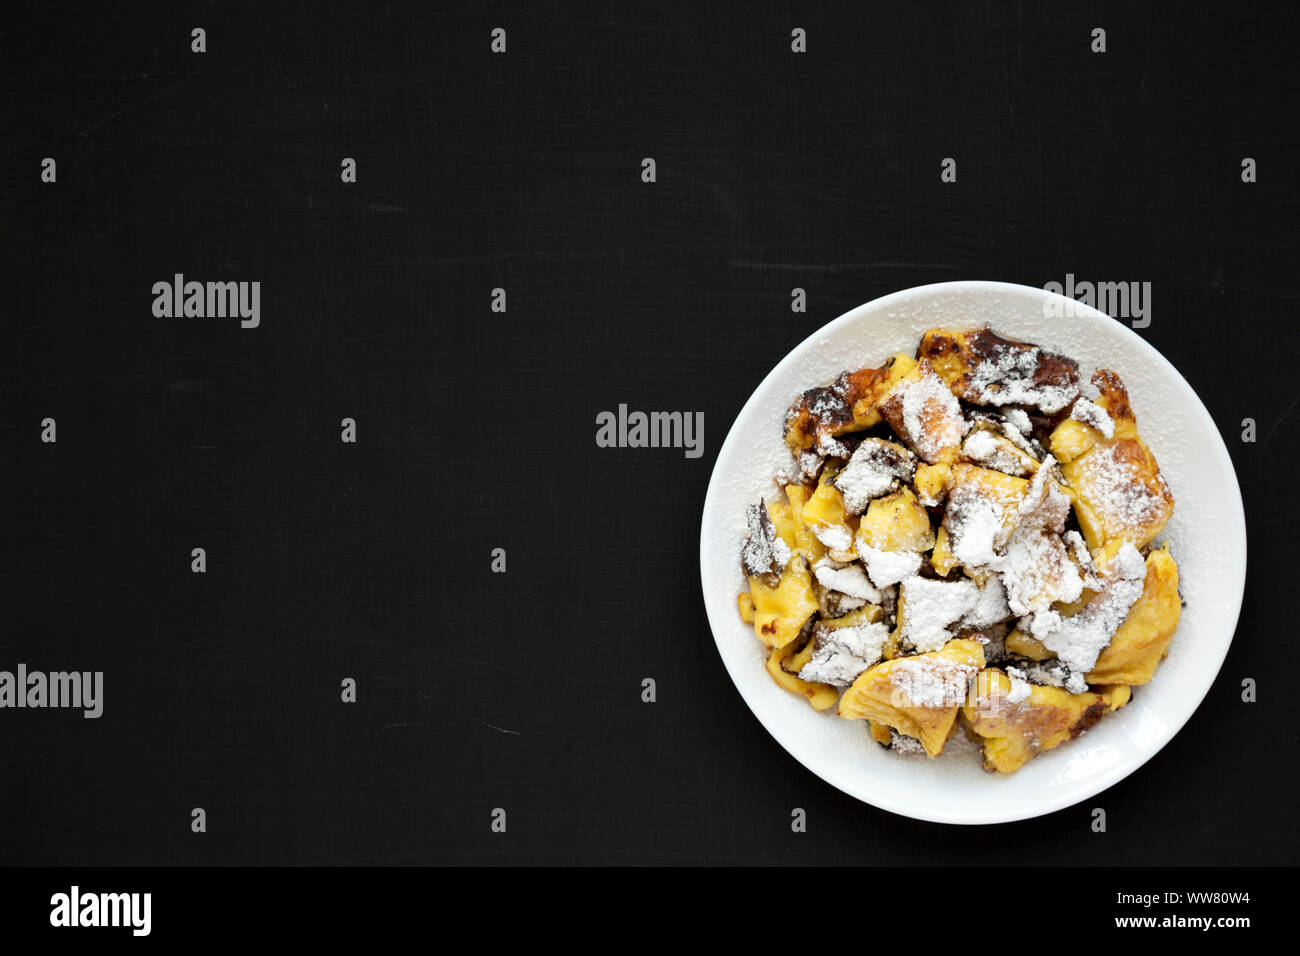 Homemade german Kaiserschmarrn pancake on a black surface, top view. Flat lay, overhead, from above. Copy space. Stock Photo